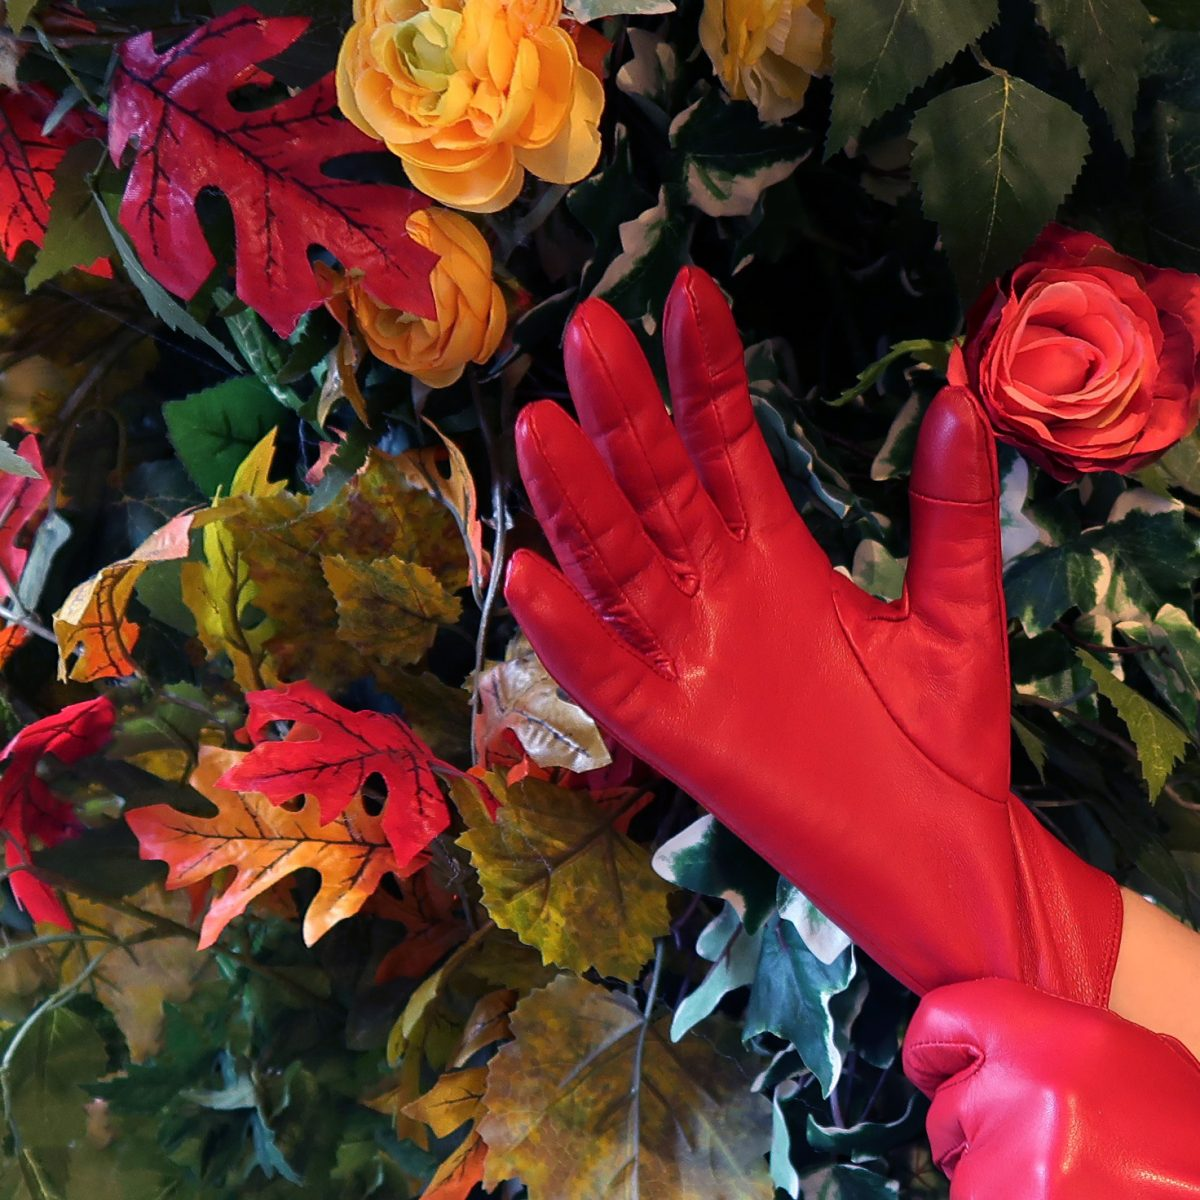 Customer image of the Barneys Originals red leather gloves in front of a floral backdrop.